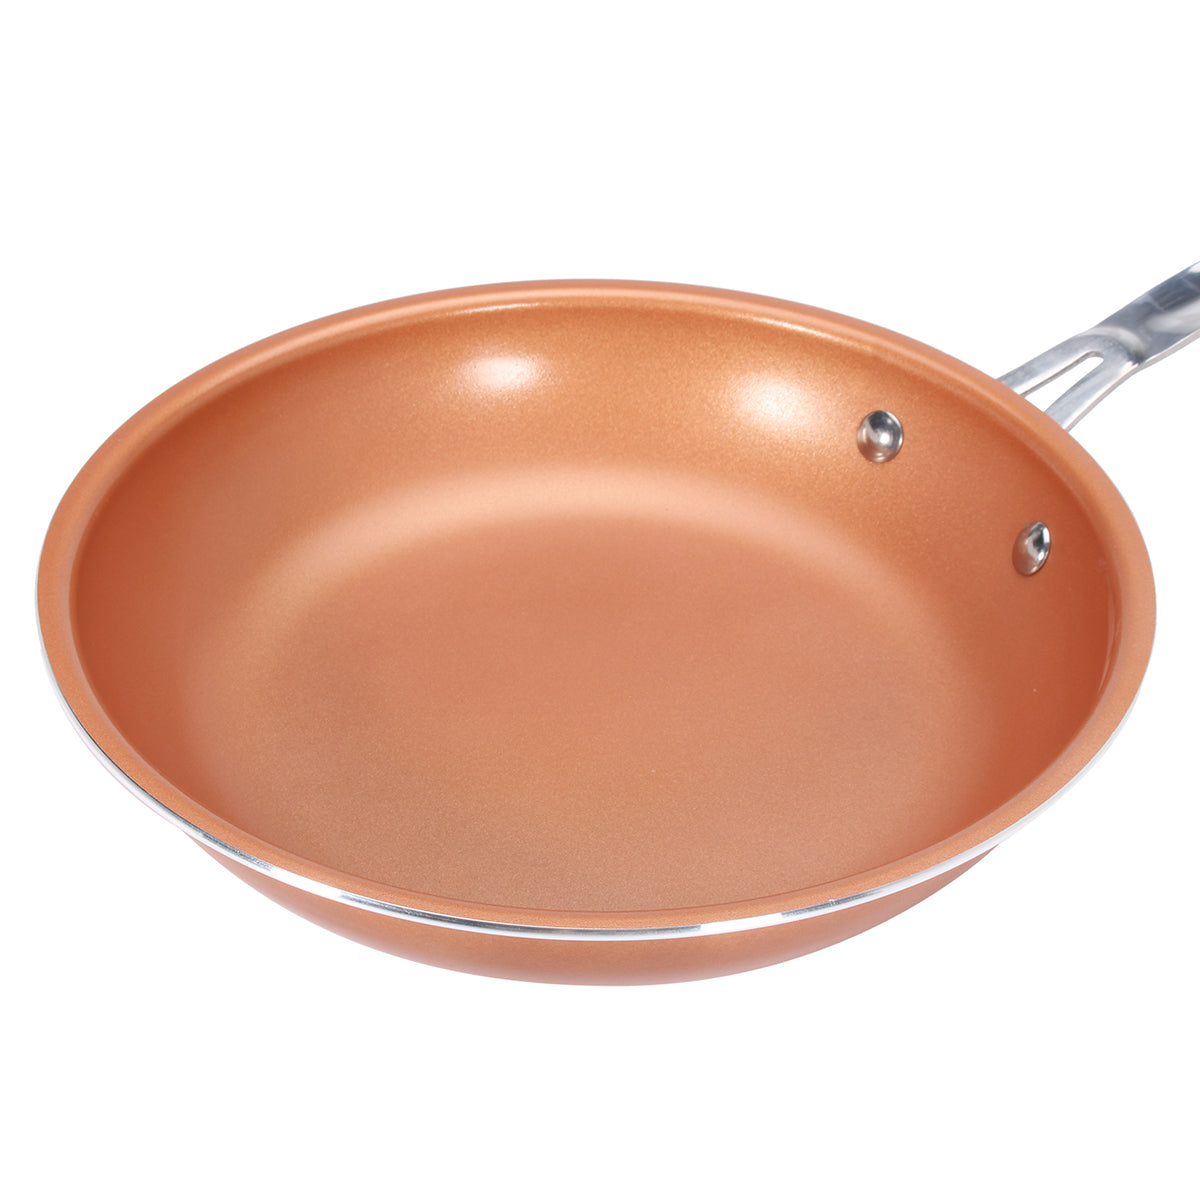 9inch Aluminum Stainless Steel Round Non Stick Copper Frying Pan Cookware Handle